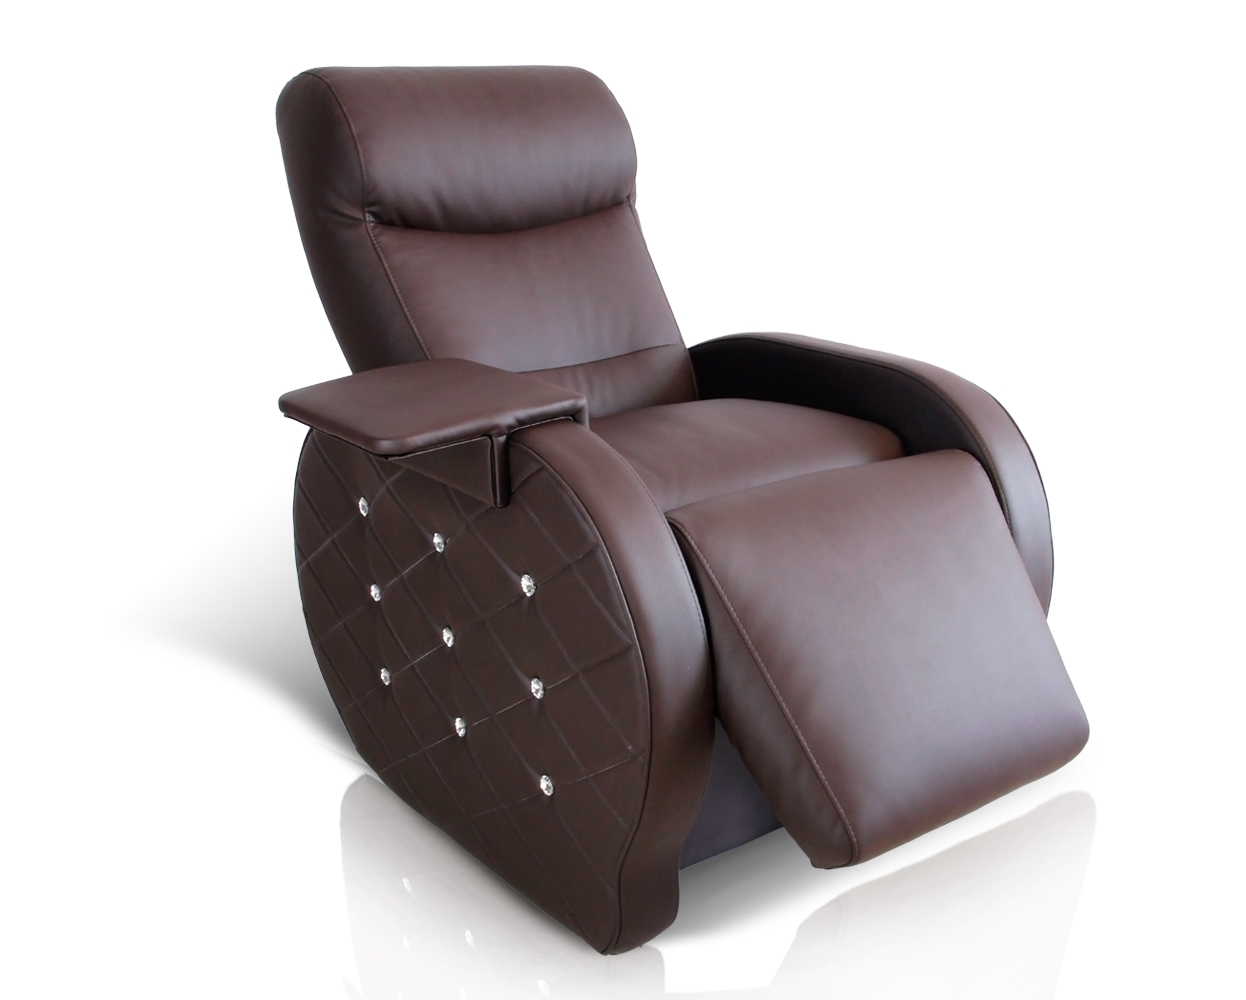 pedicure chair manufacturers ergonomic for your back manicure chairs supplier factory